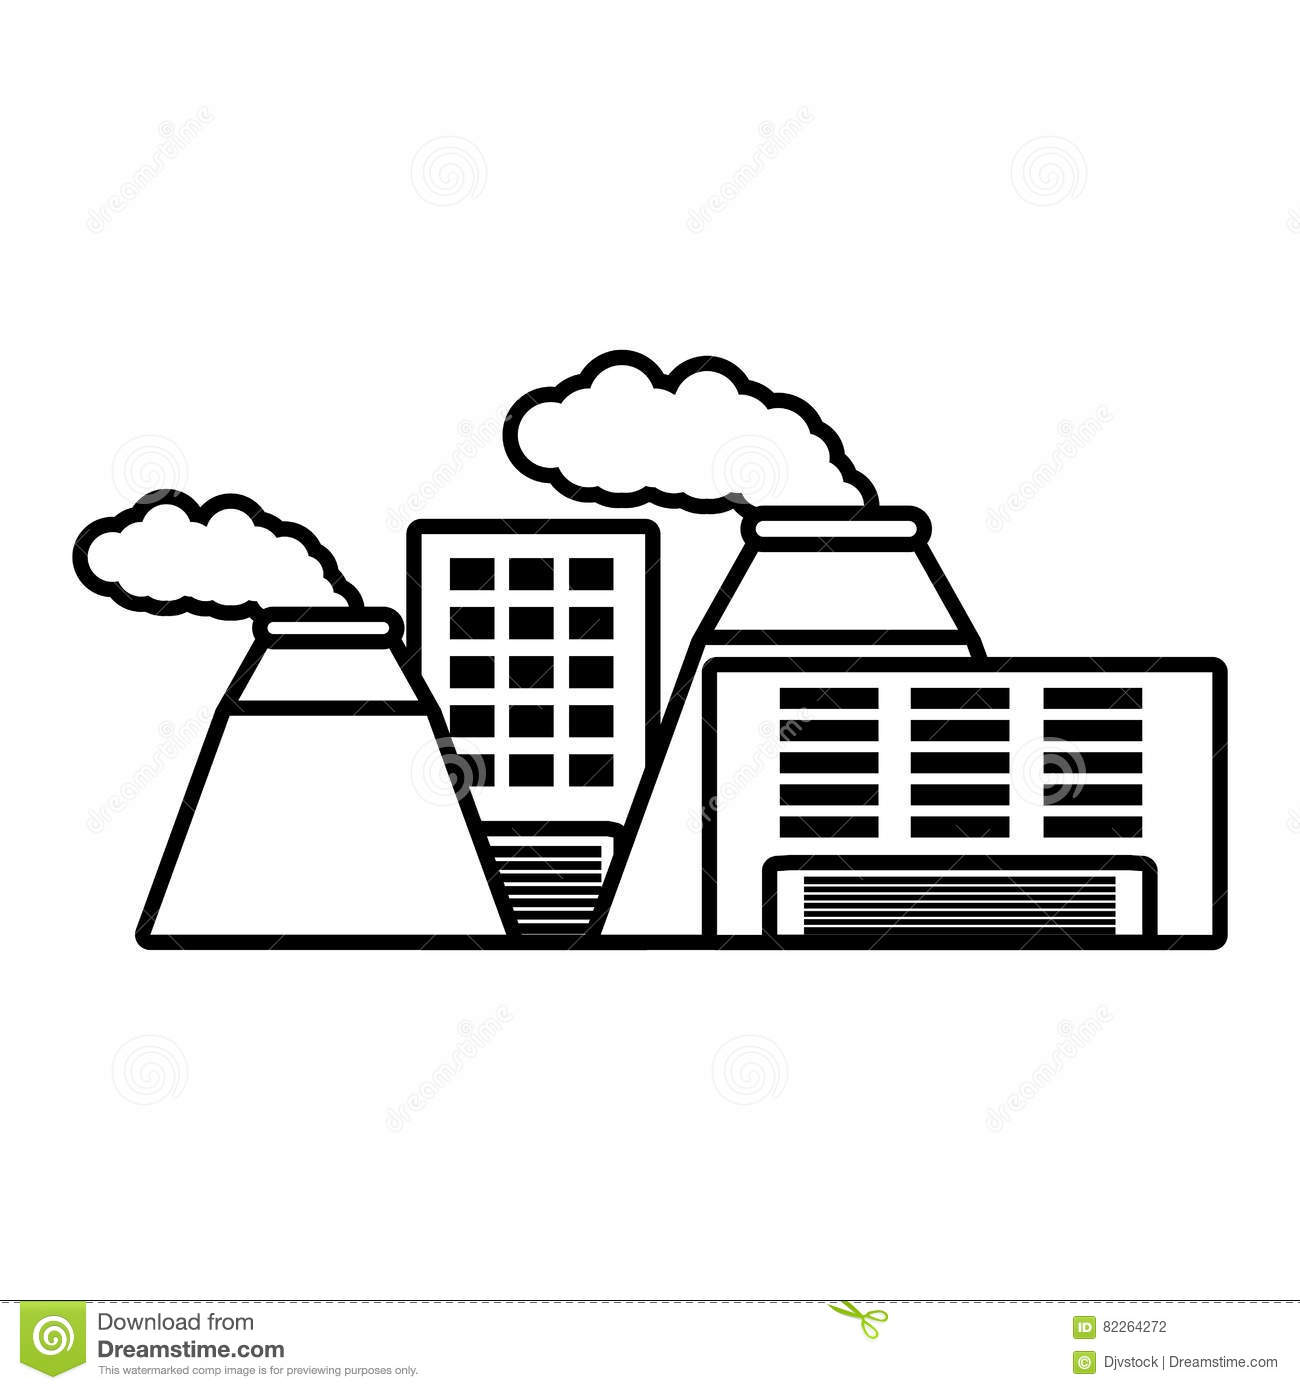 Plant Nuclear And Factory Building Outline Stock